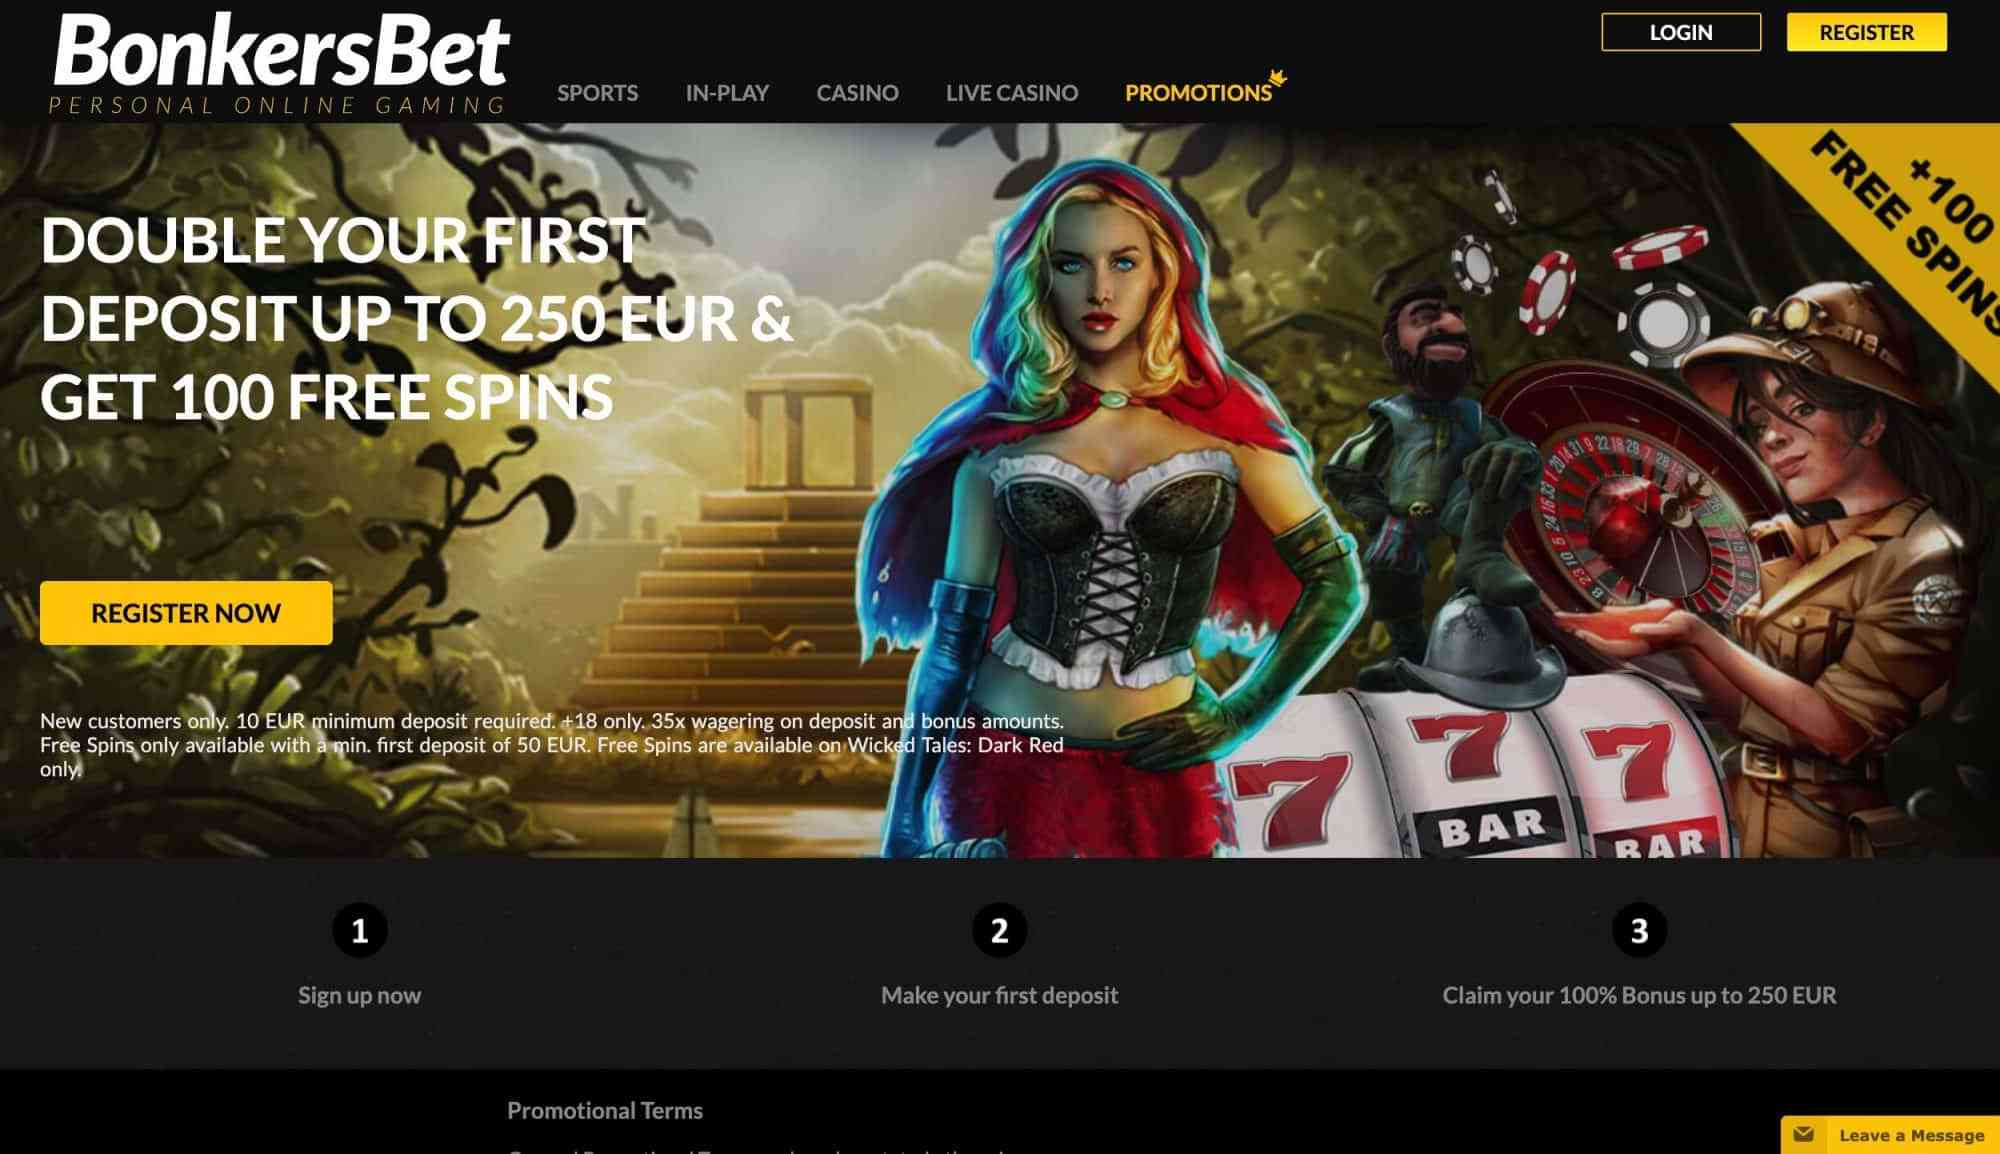 BonkersBet Casino - 200% match plus plus 100 free spins!